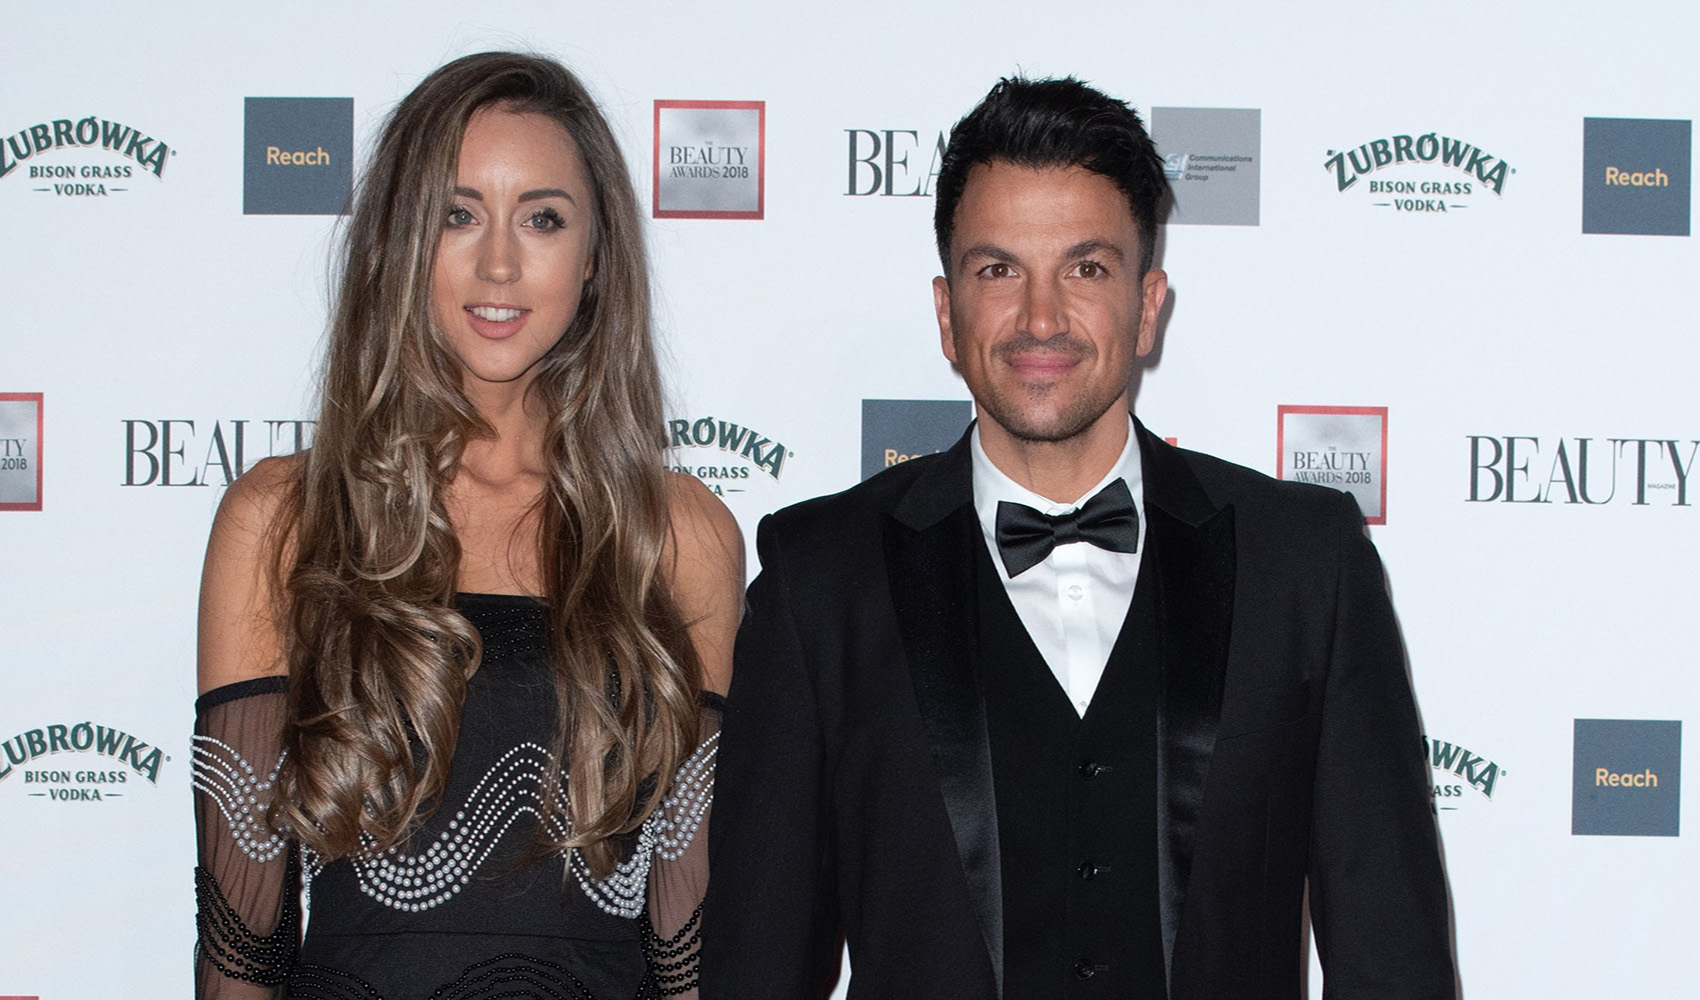 Peter Andre staying in separate room from doctor wife amid coronavirus fears